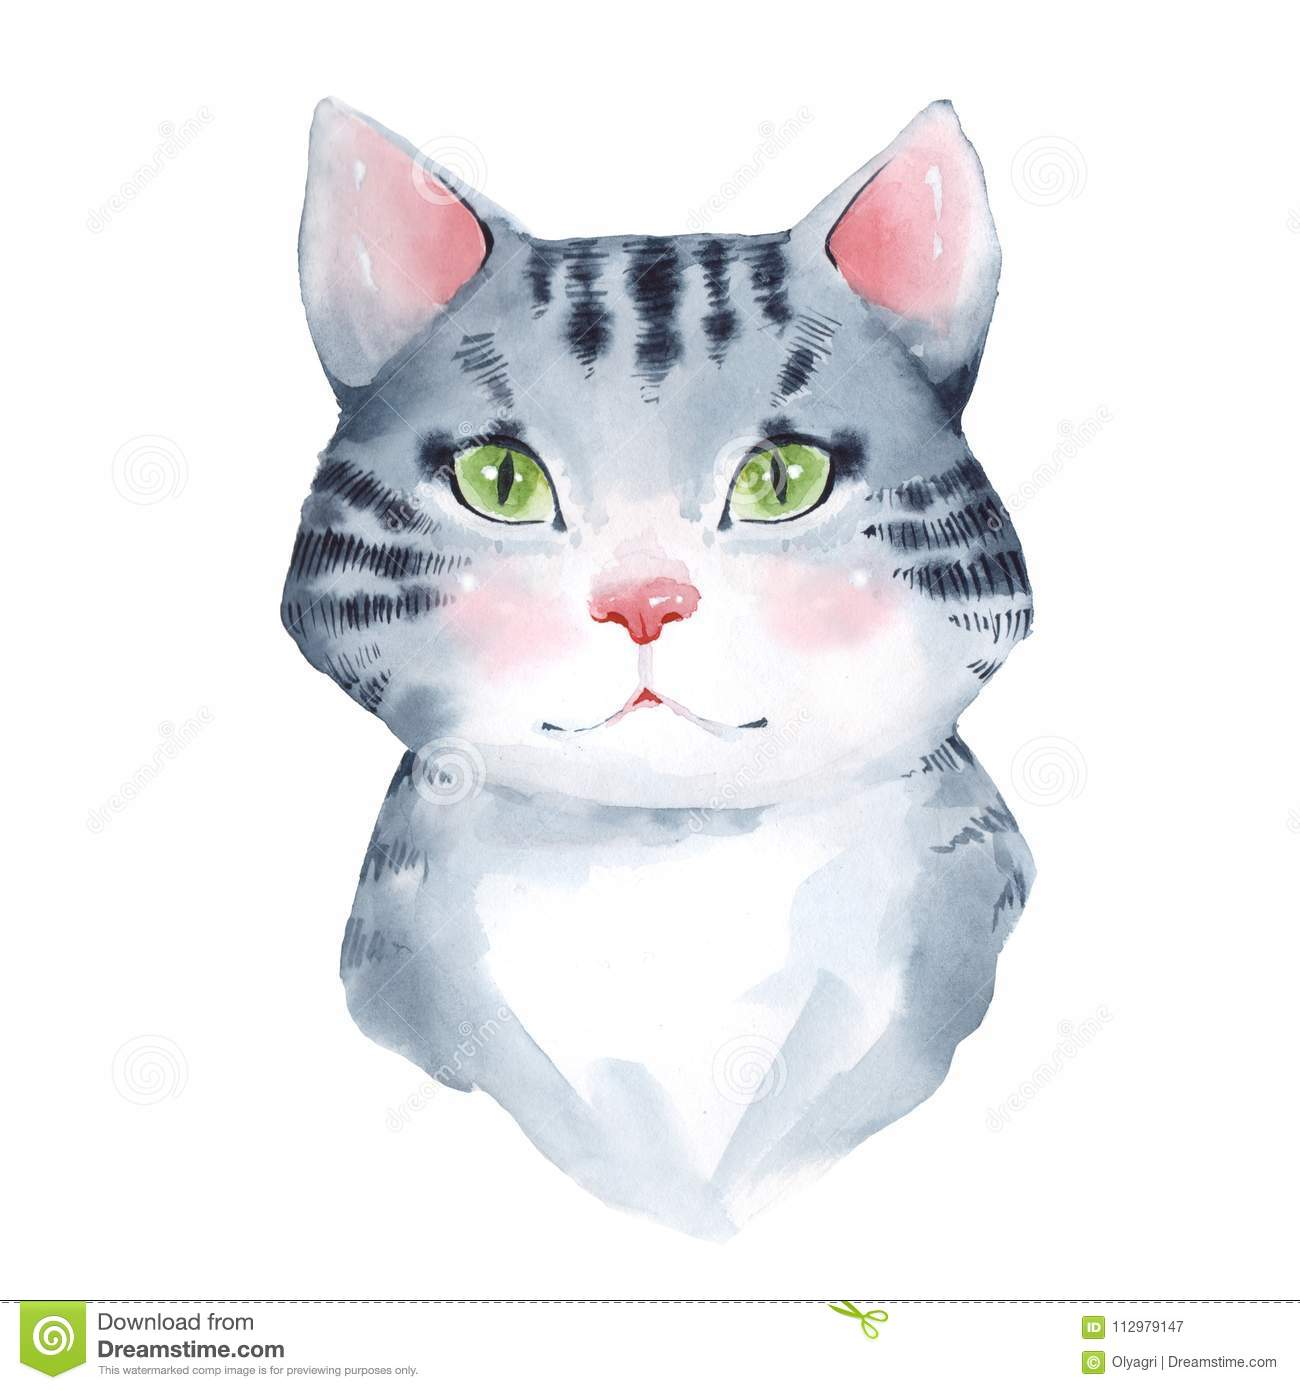 Cat. Watercolor illustration, isolated